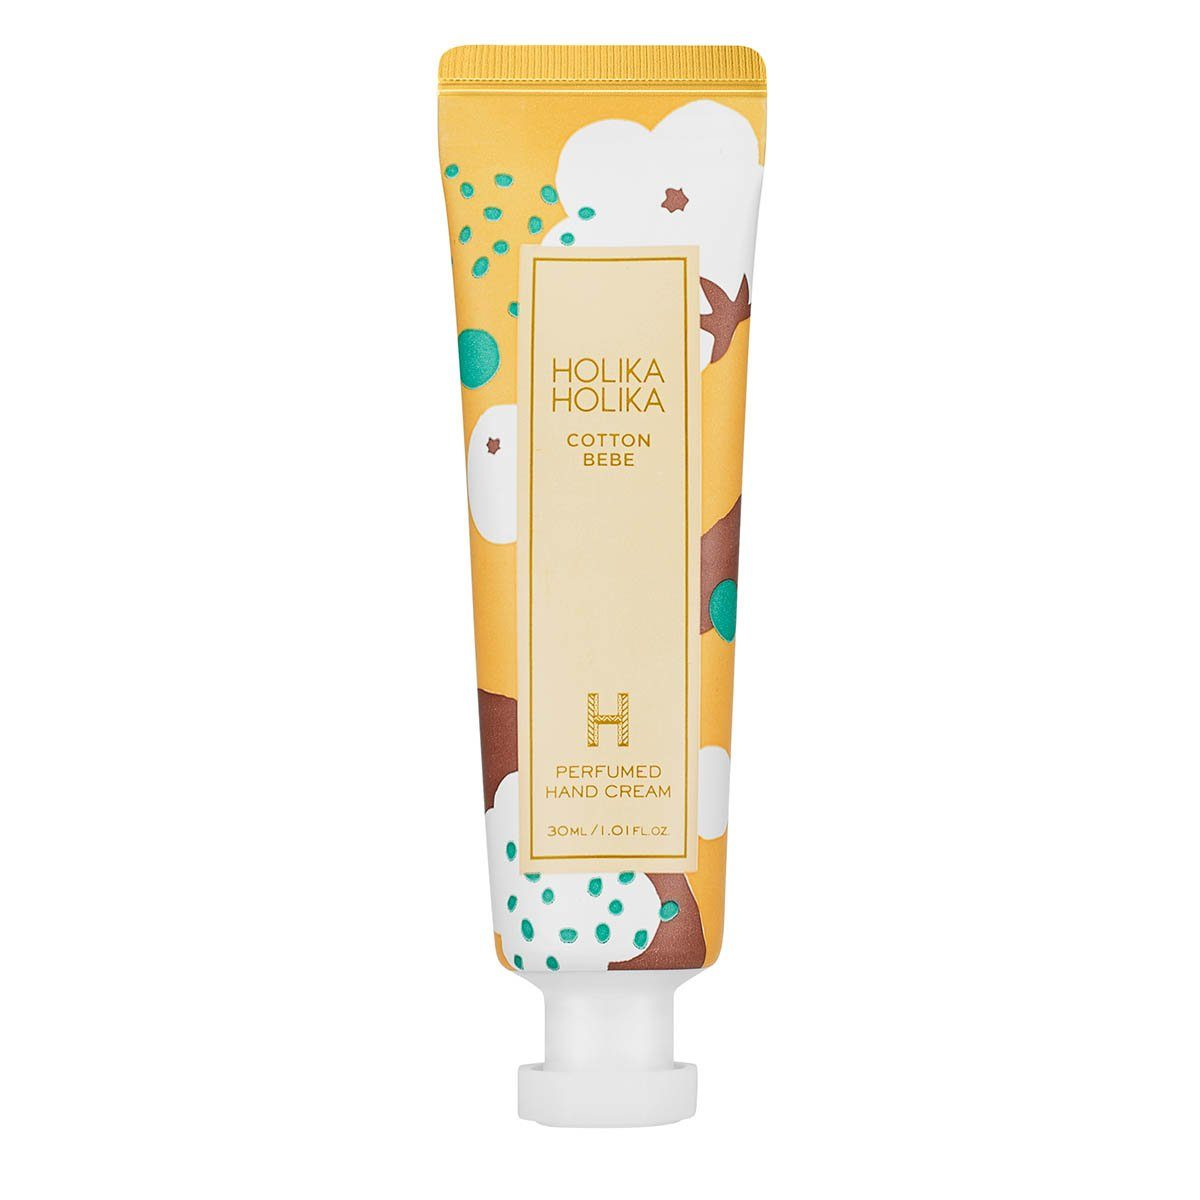 Health & Beauty > Personal Care > Cosmetics > Skin Care > Lotion & Moisturizer - Cotton Bebe Perfumed Hand Cream Krem Do Rąk 30 Ml